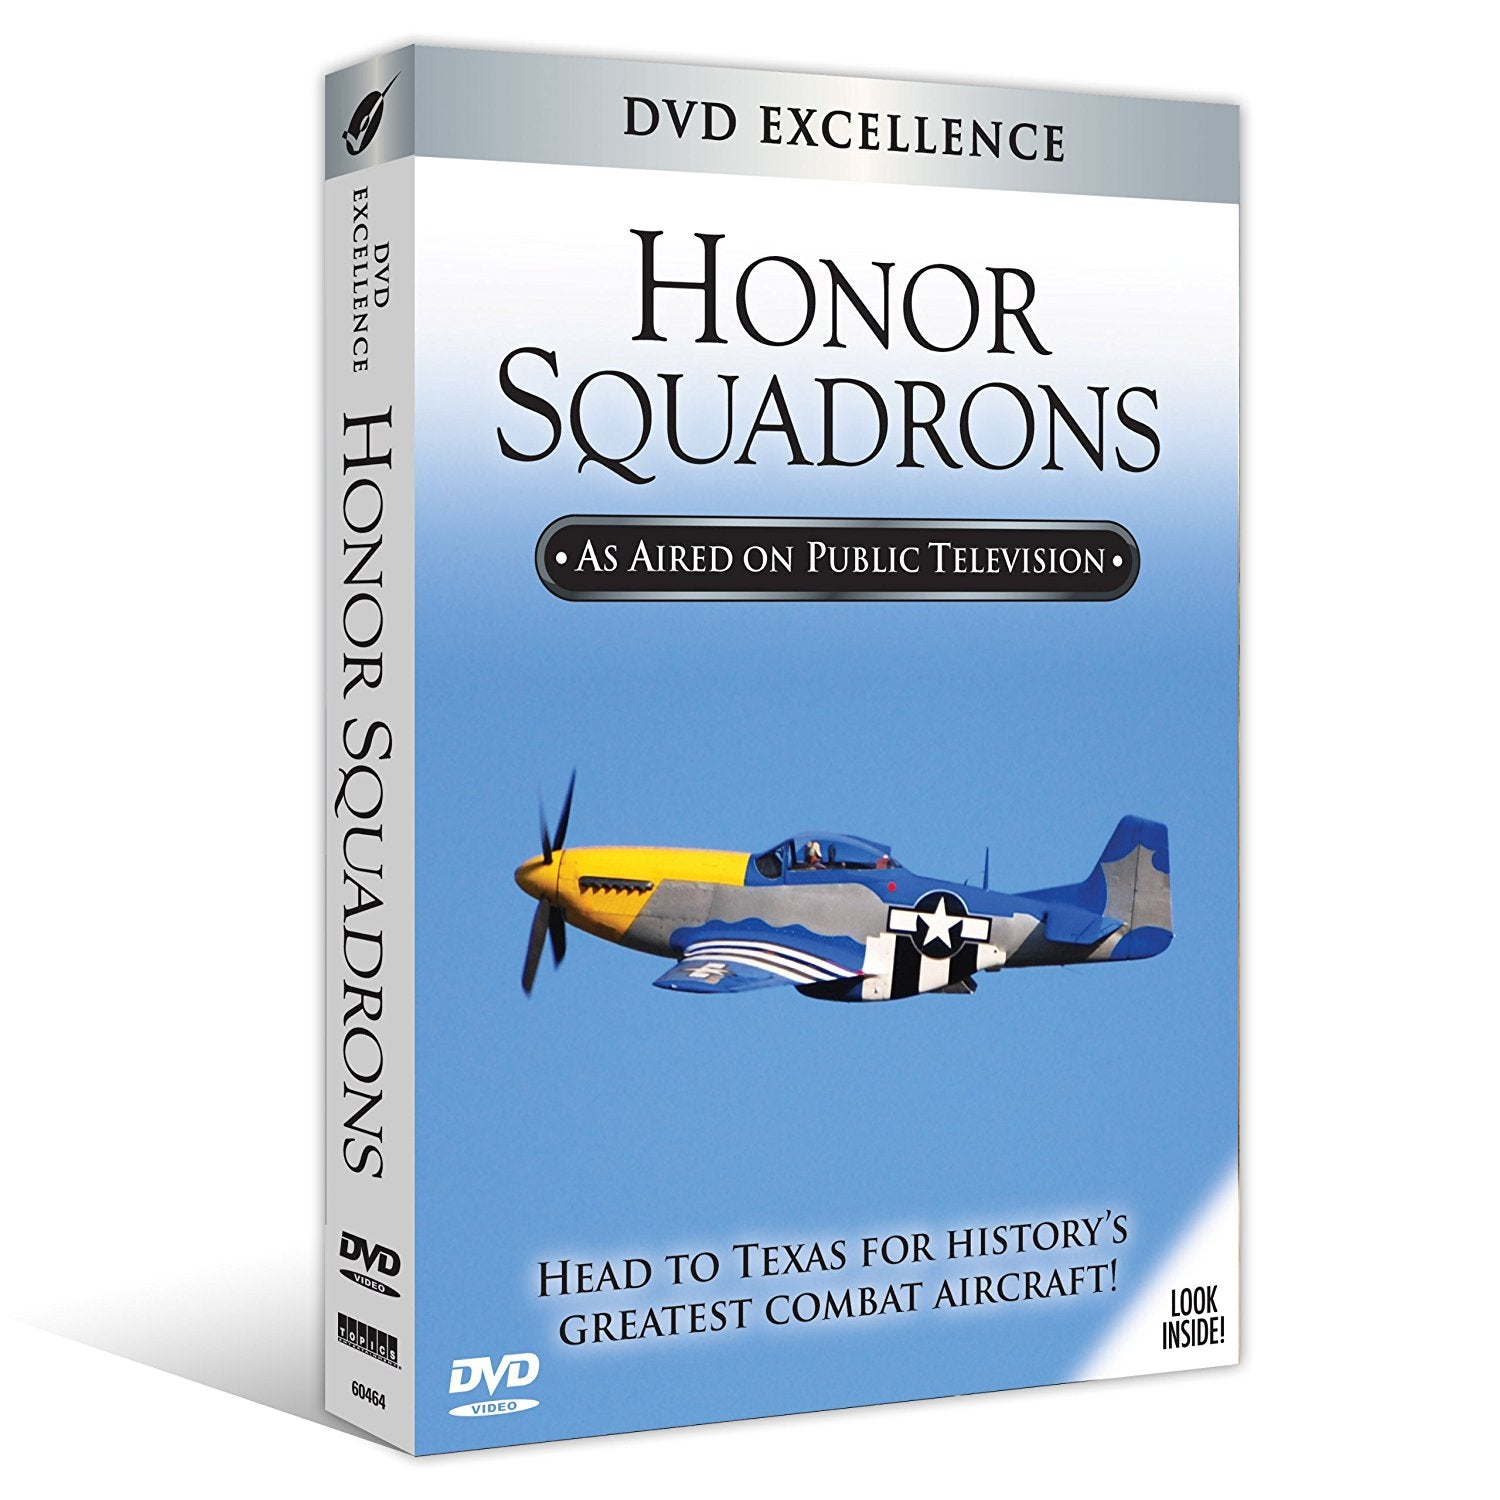 Honor Squadron of Texas (1 DVD)